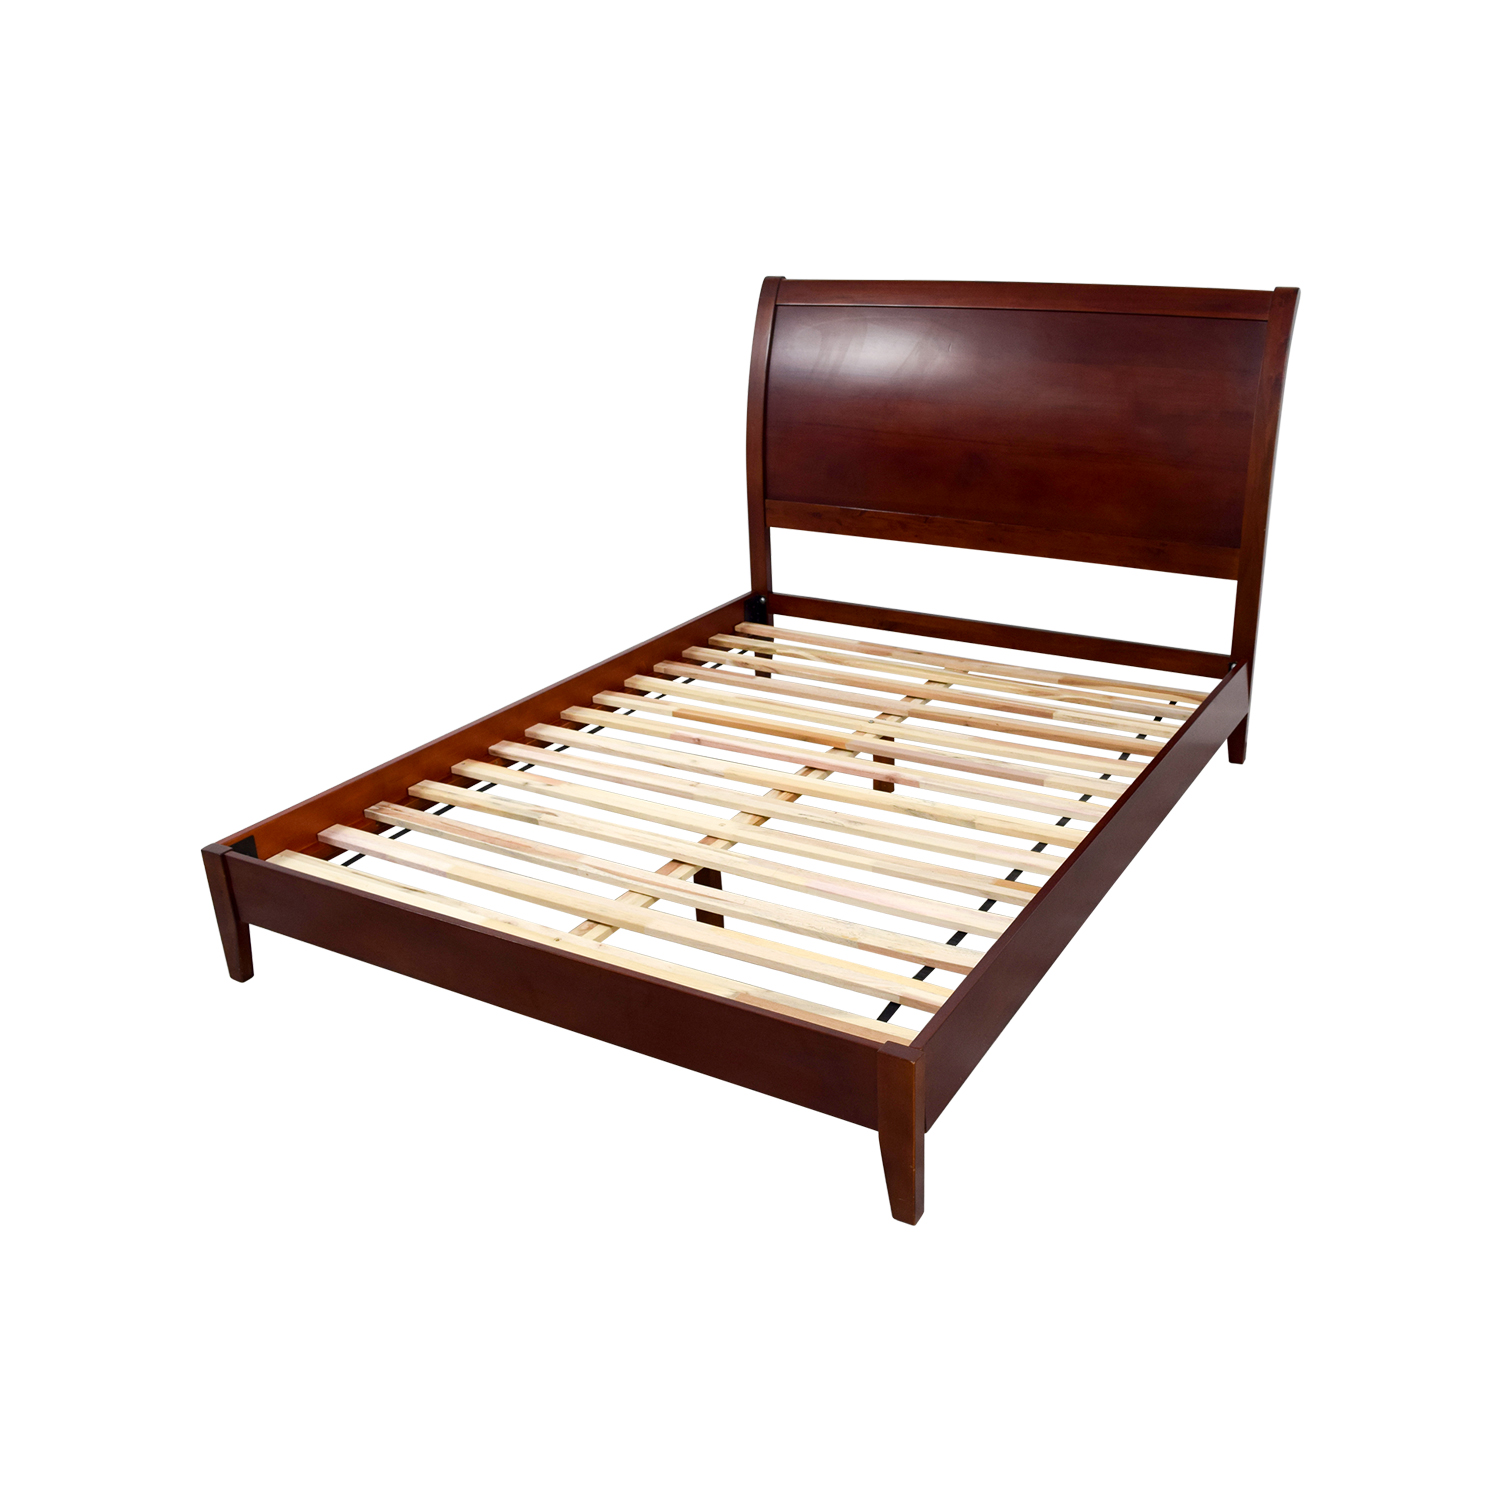 70 off sleepy 39 s sleepy 39 s queen wooden bed frame beds Wooden bed furniture